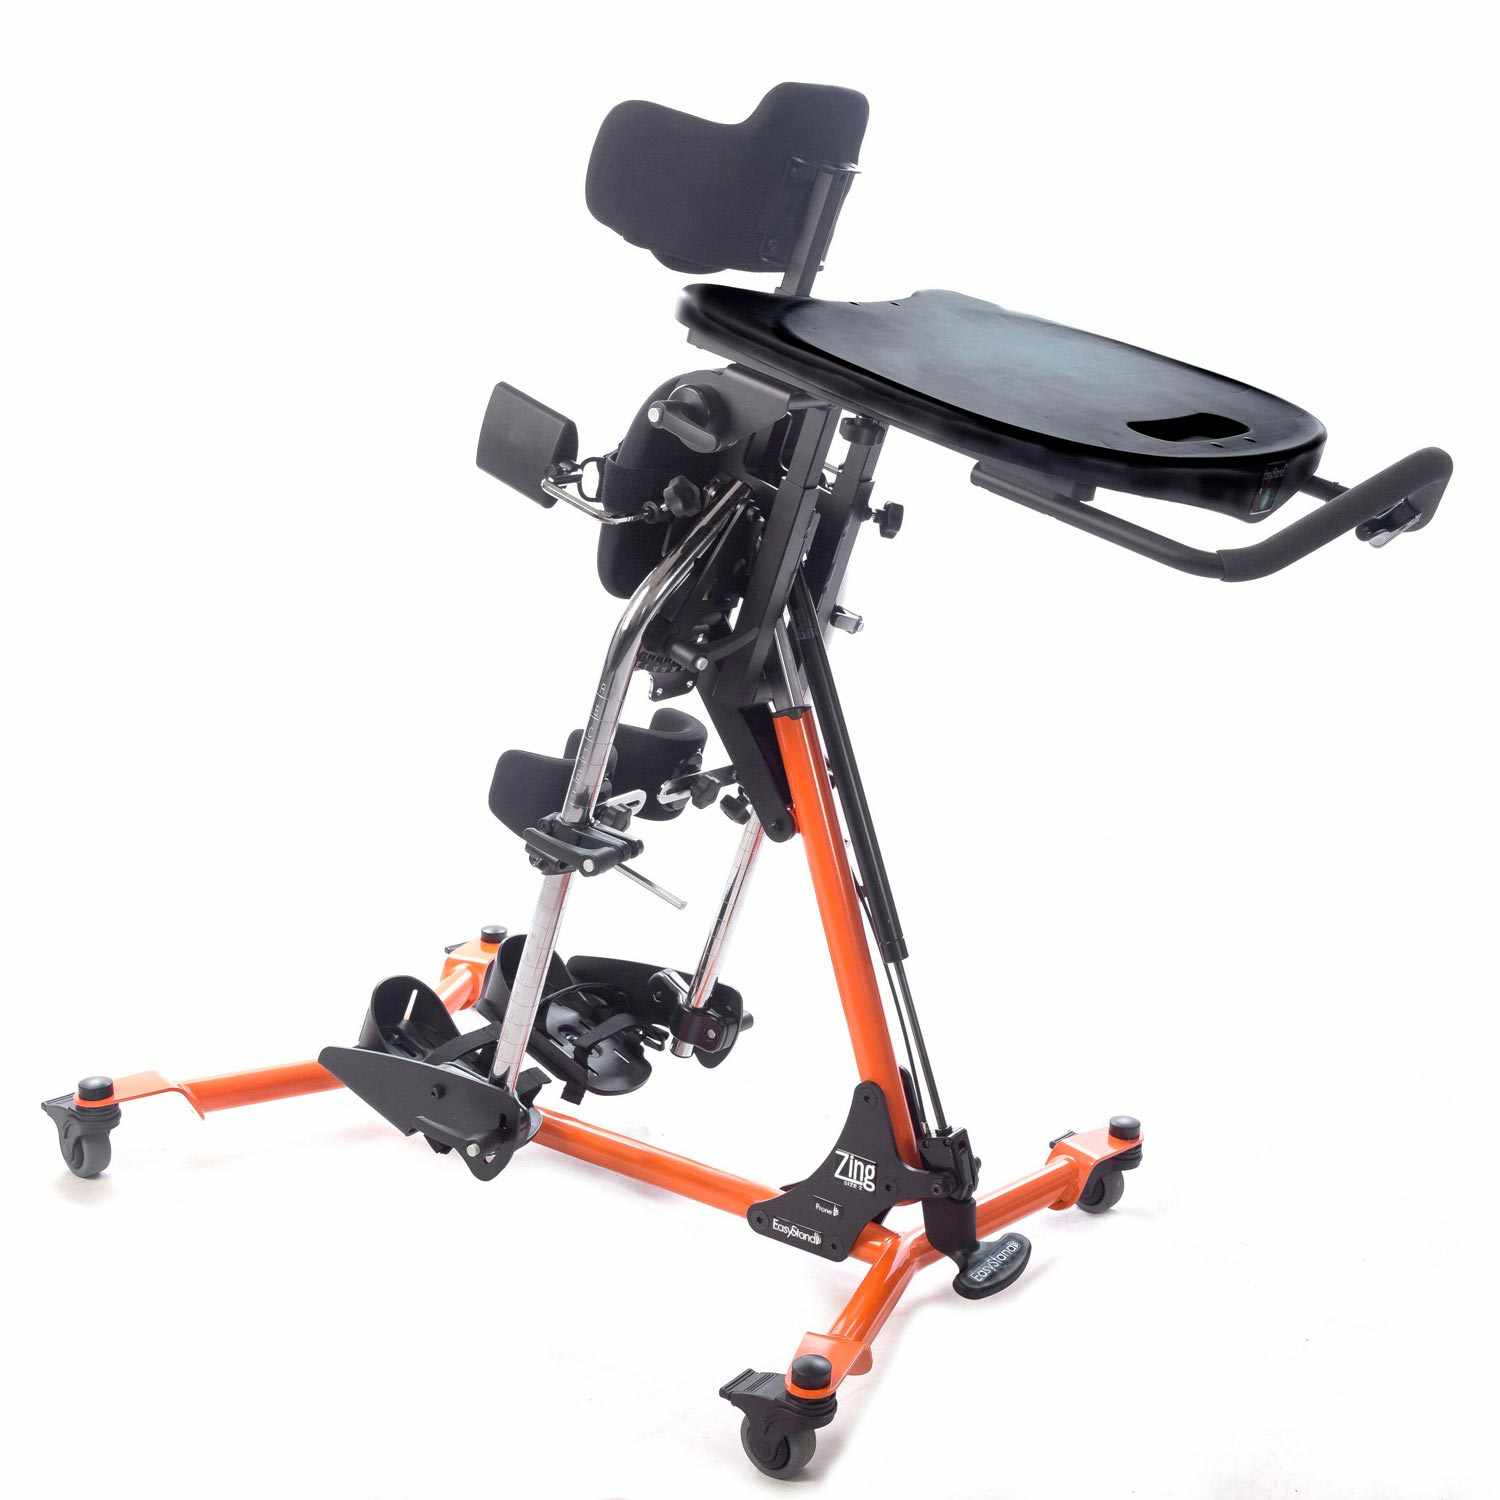 Easystand zing size 2 prone stander